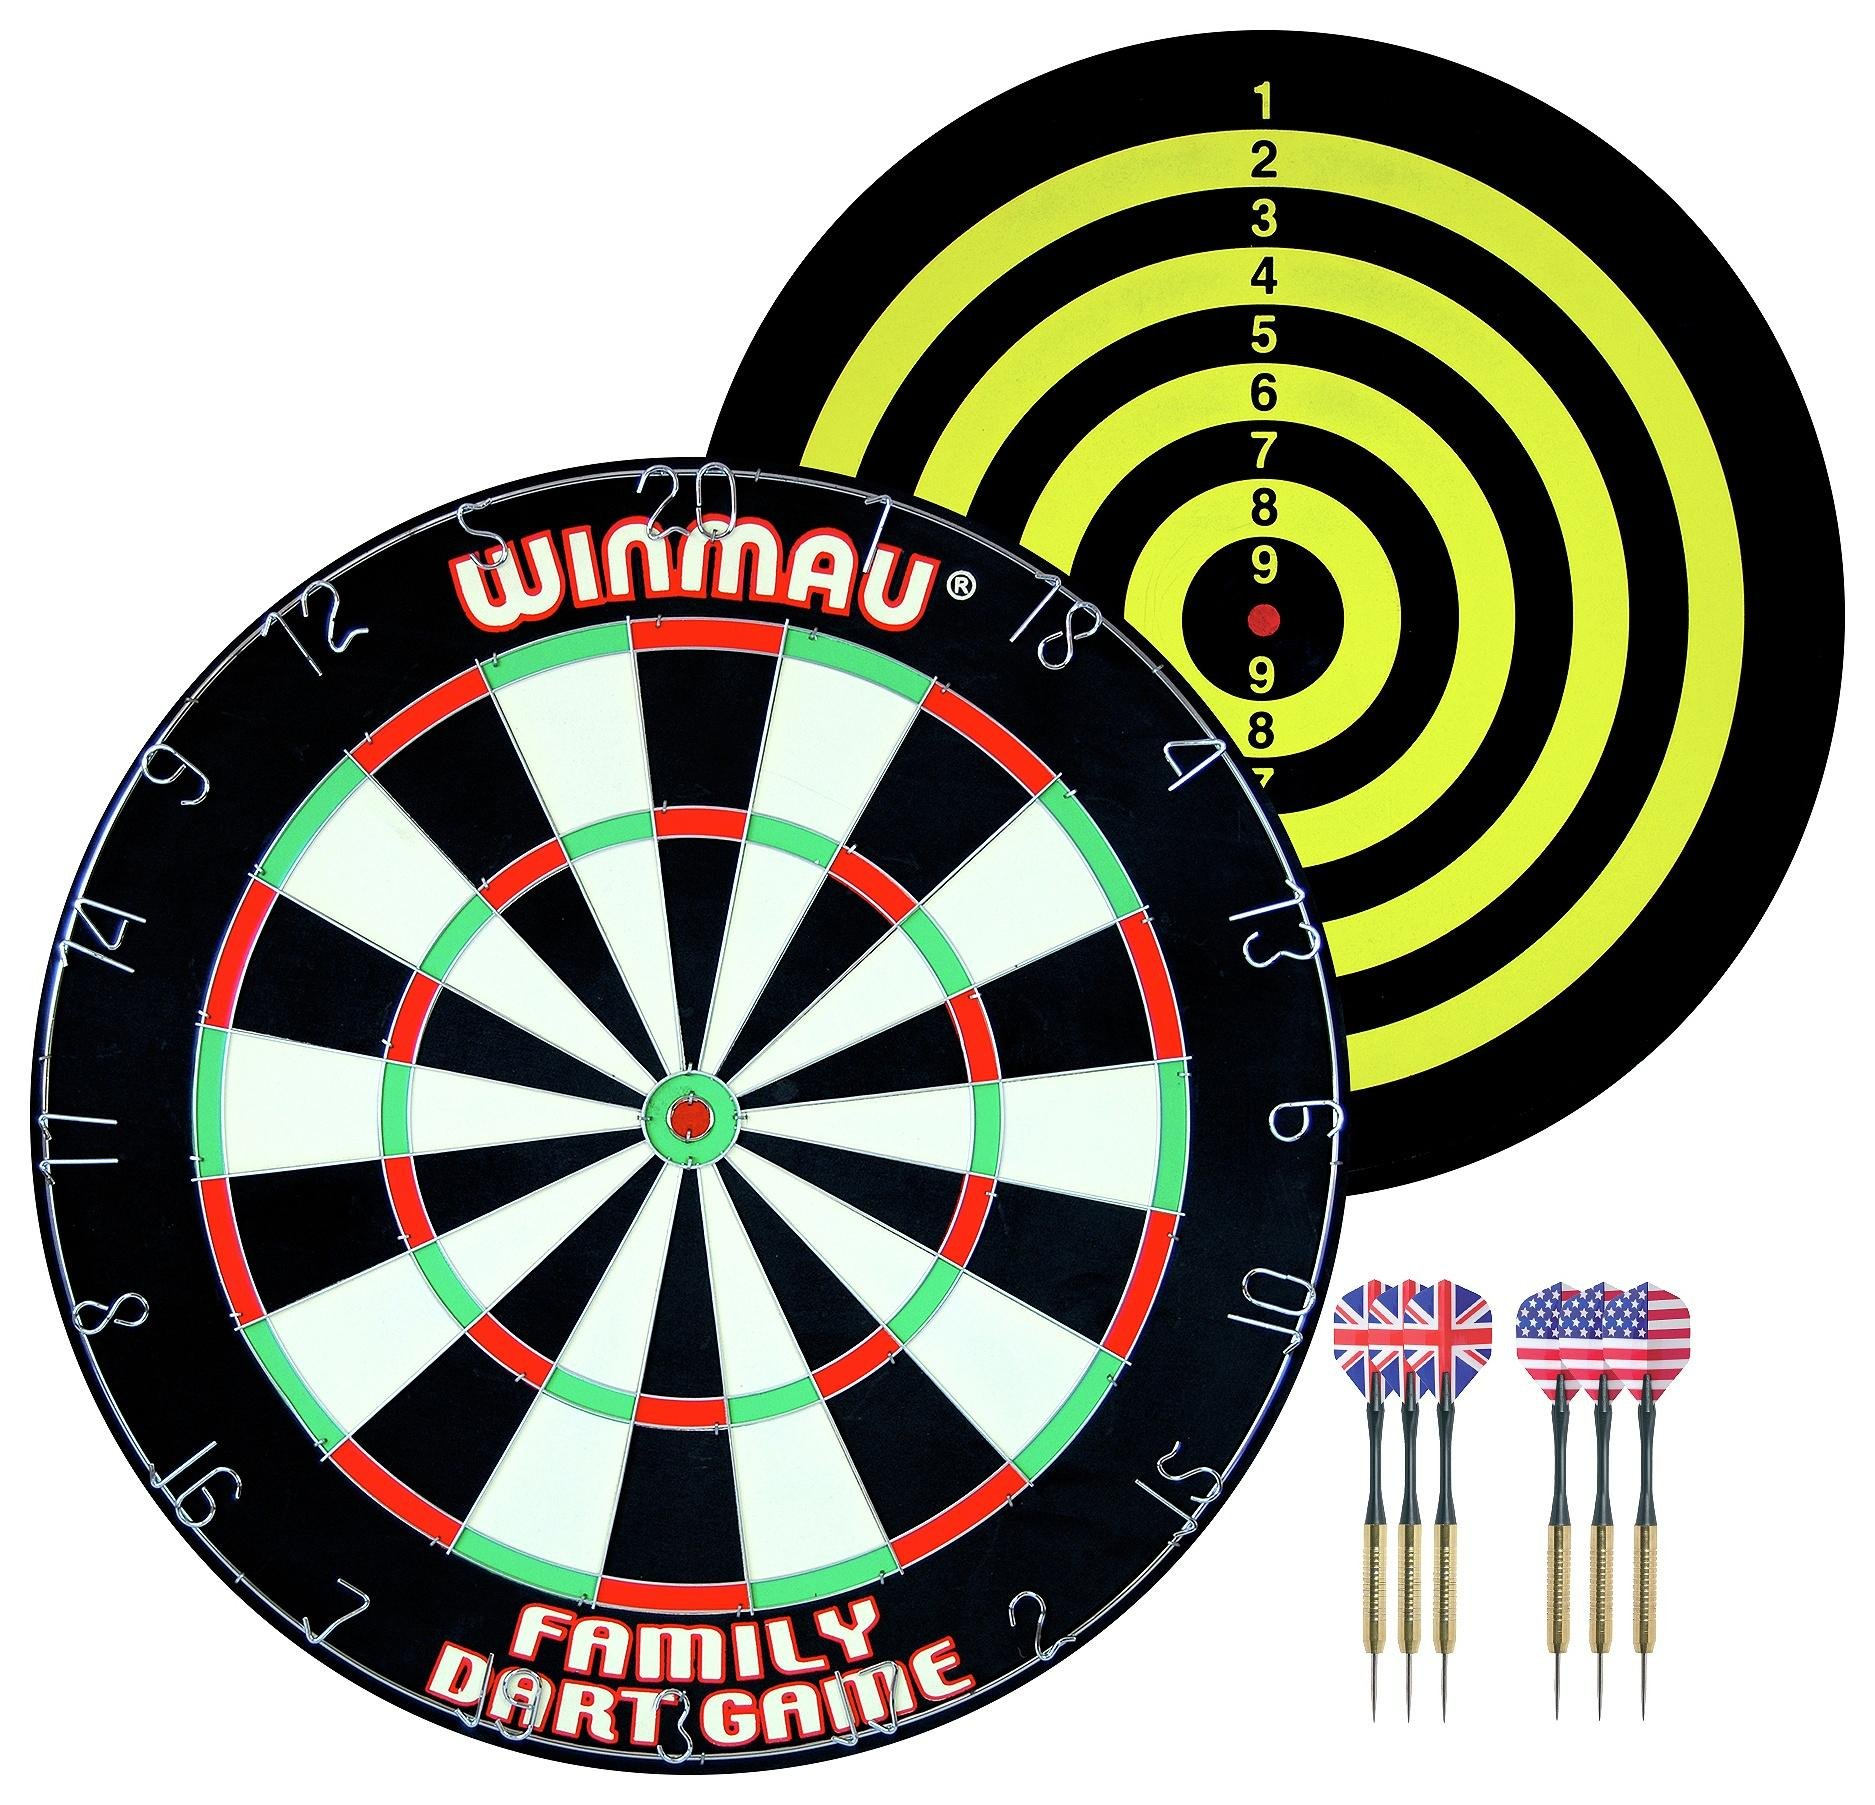 winmau-family-dart-game